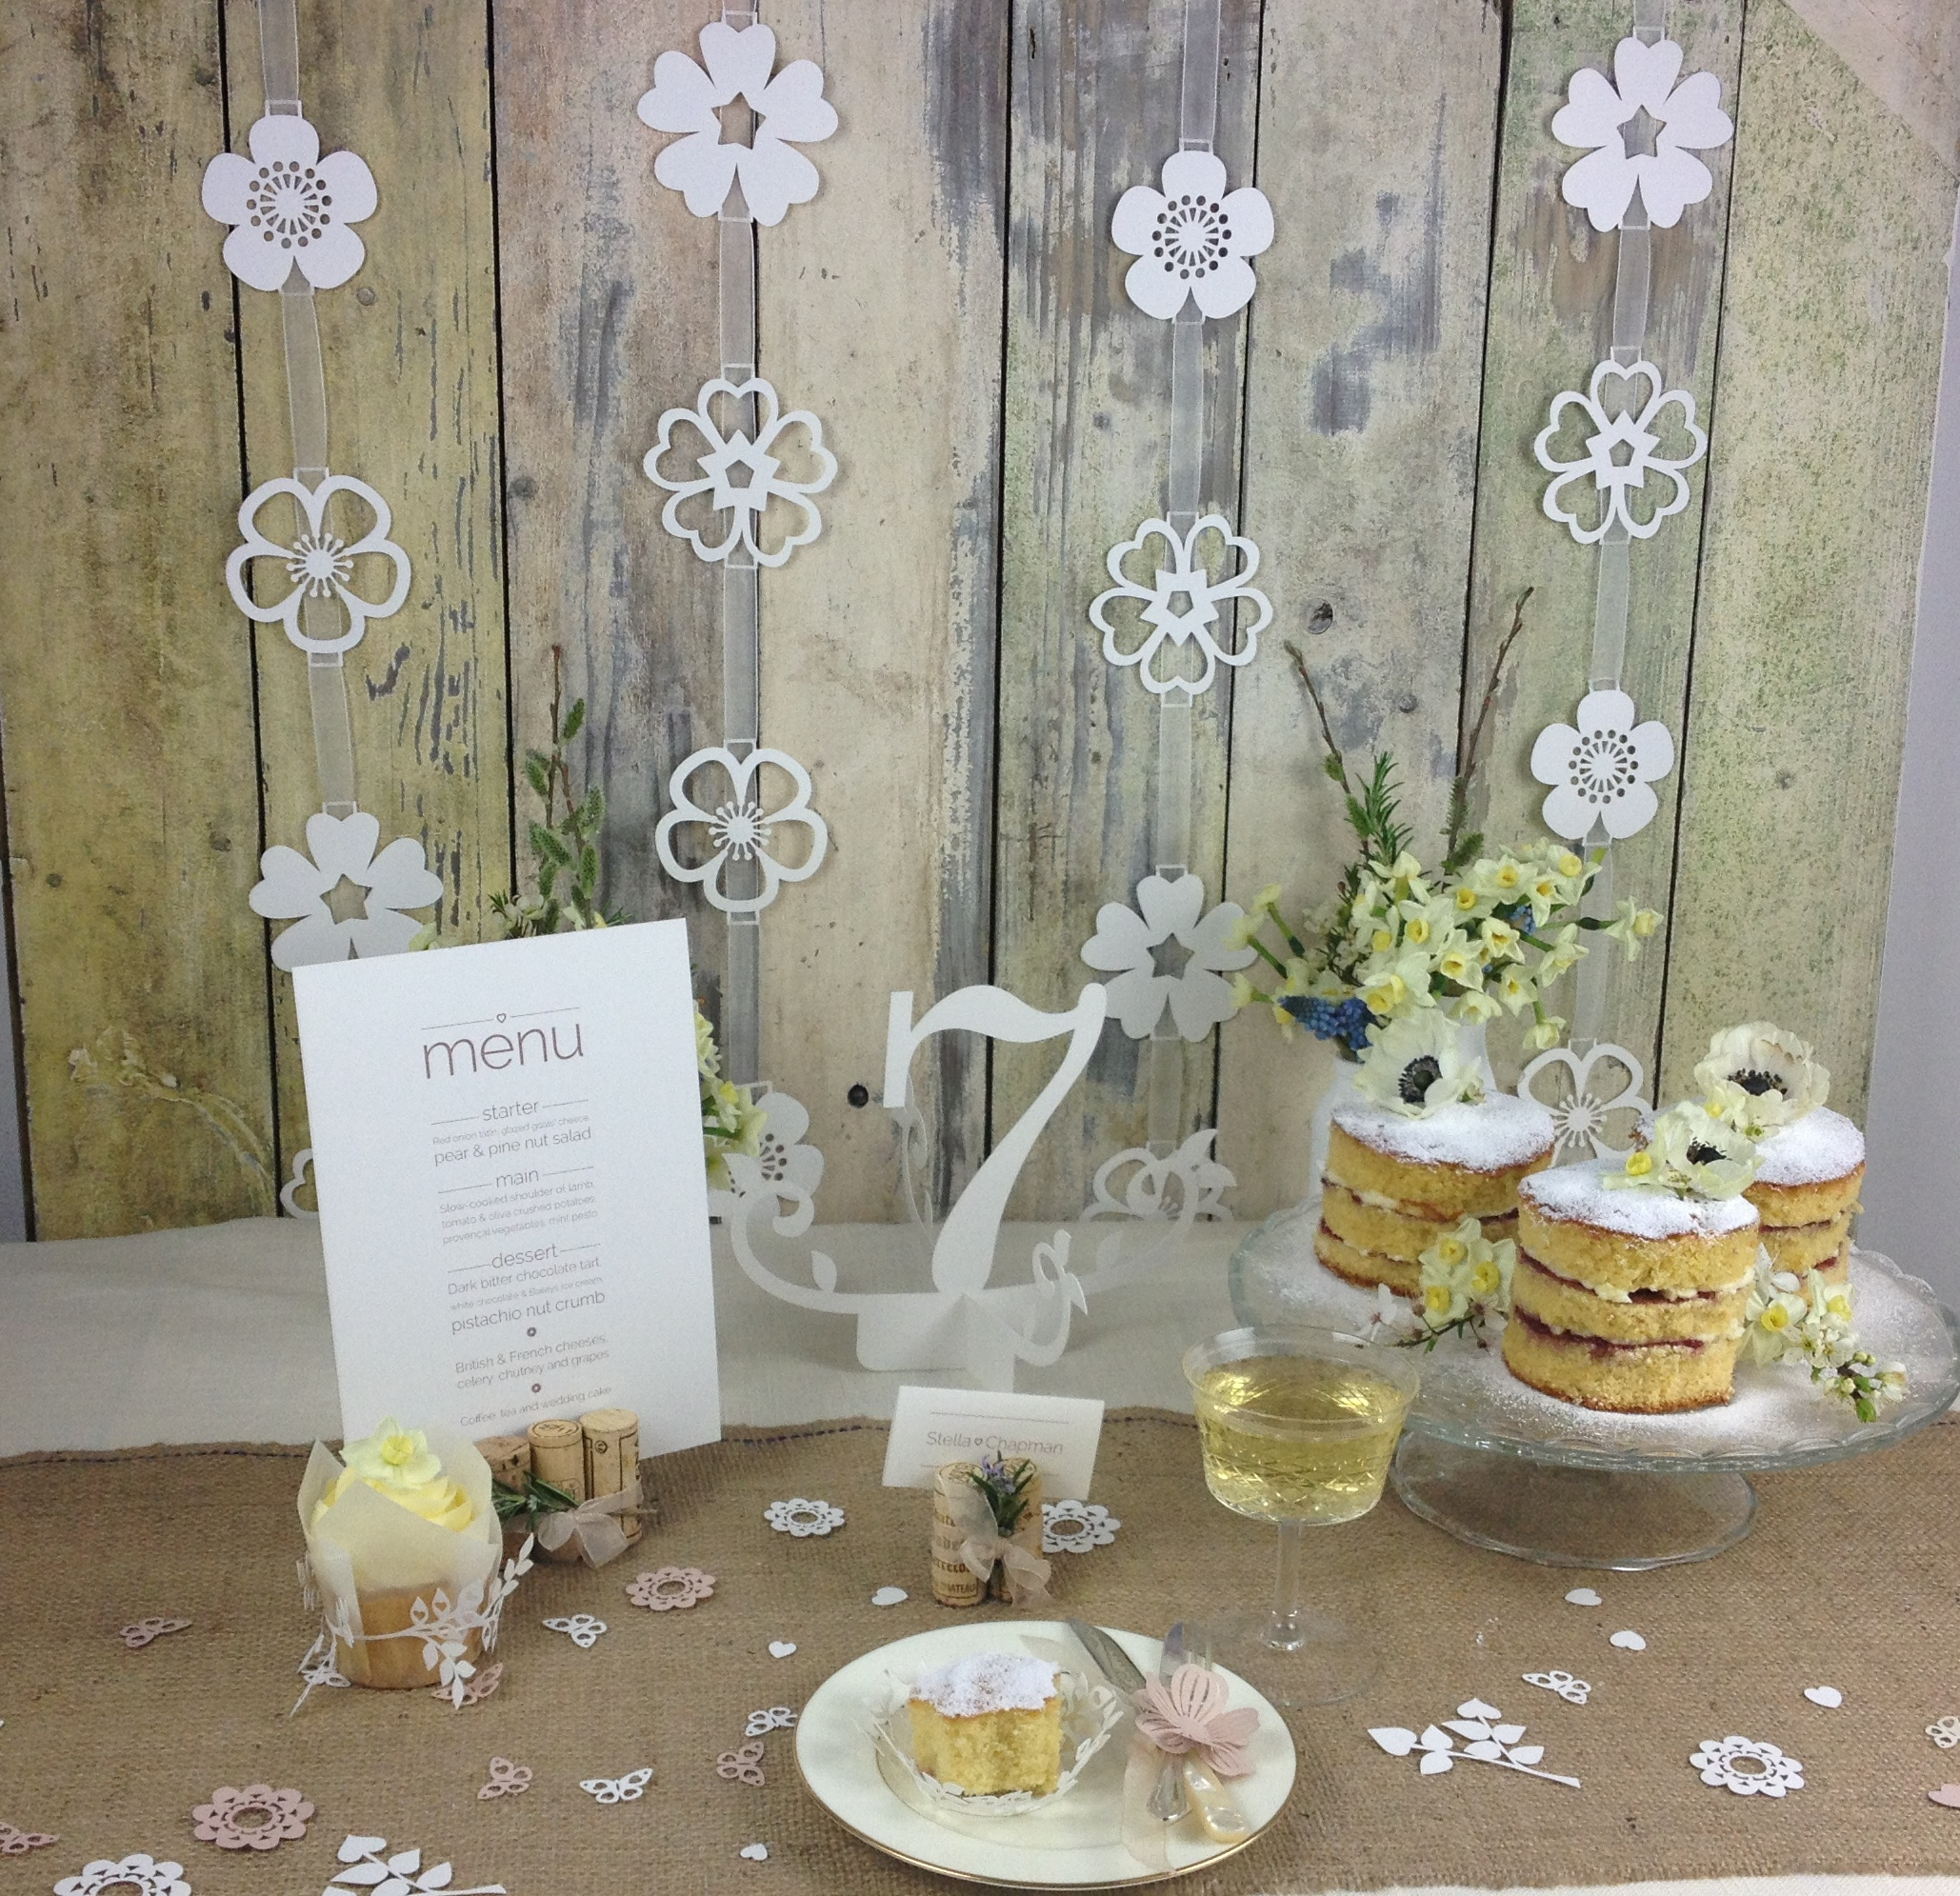 A woodland wedding themed table setting using items from our Natural Charms range - Thank you to my friends for collecting corks for this shoot